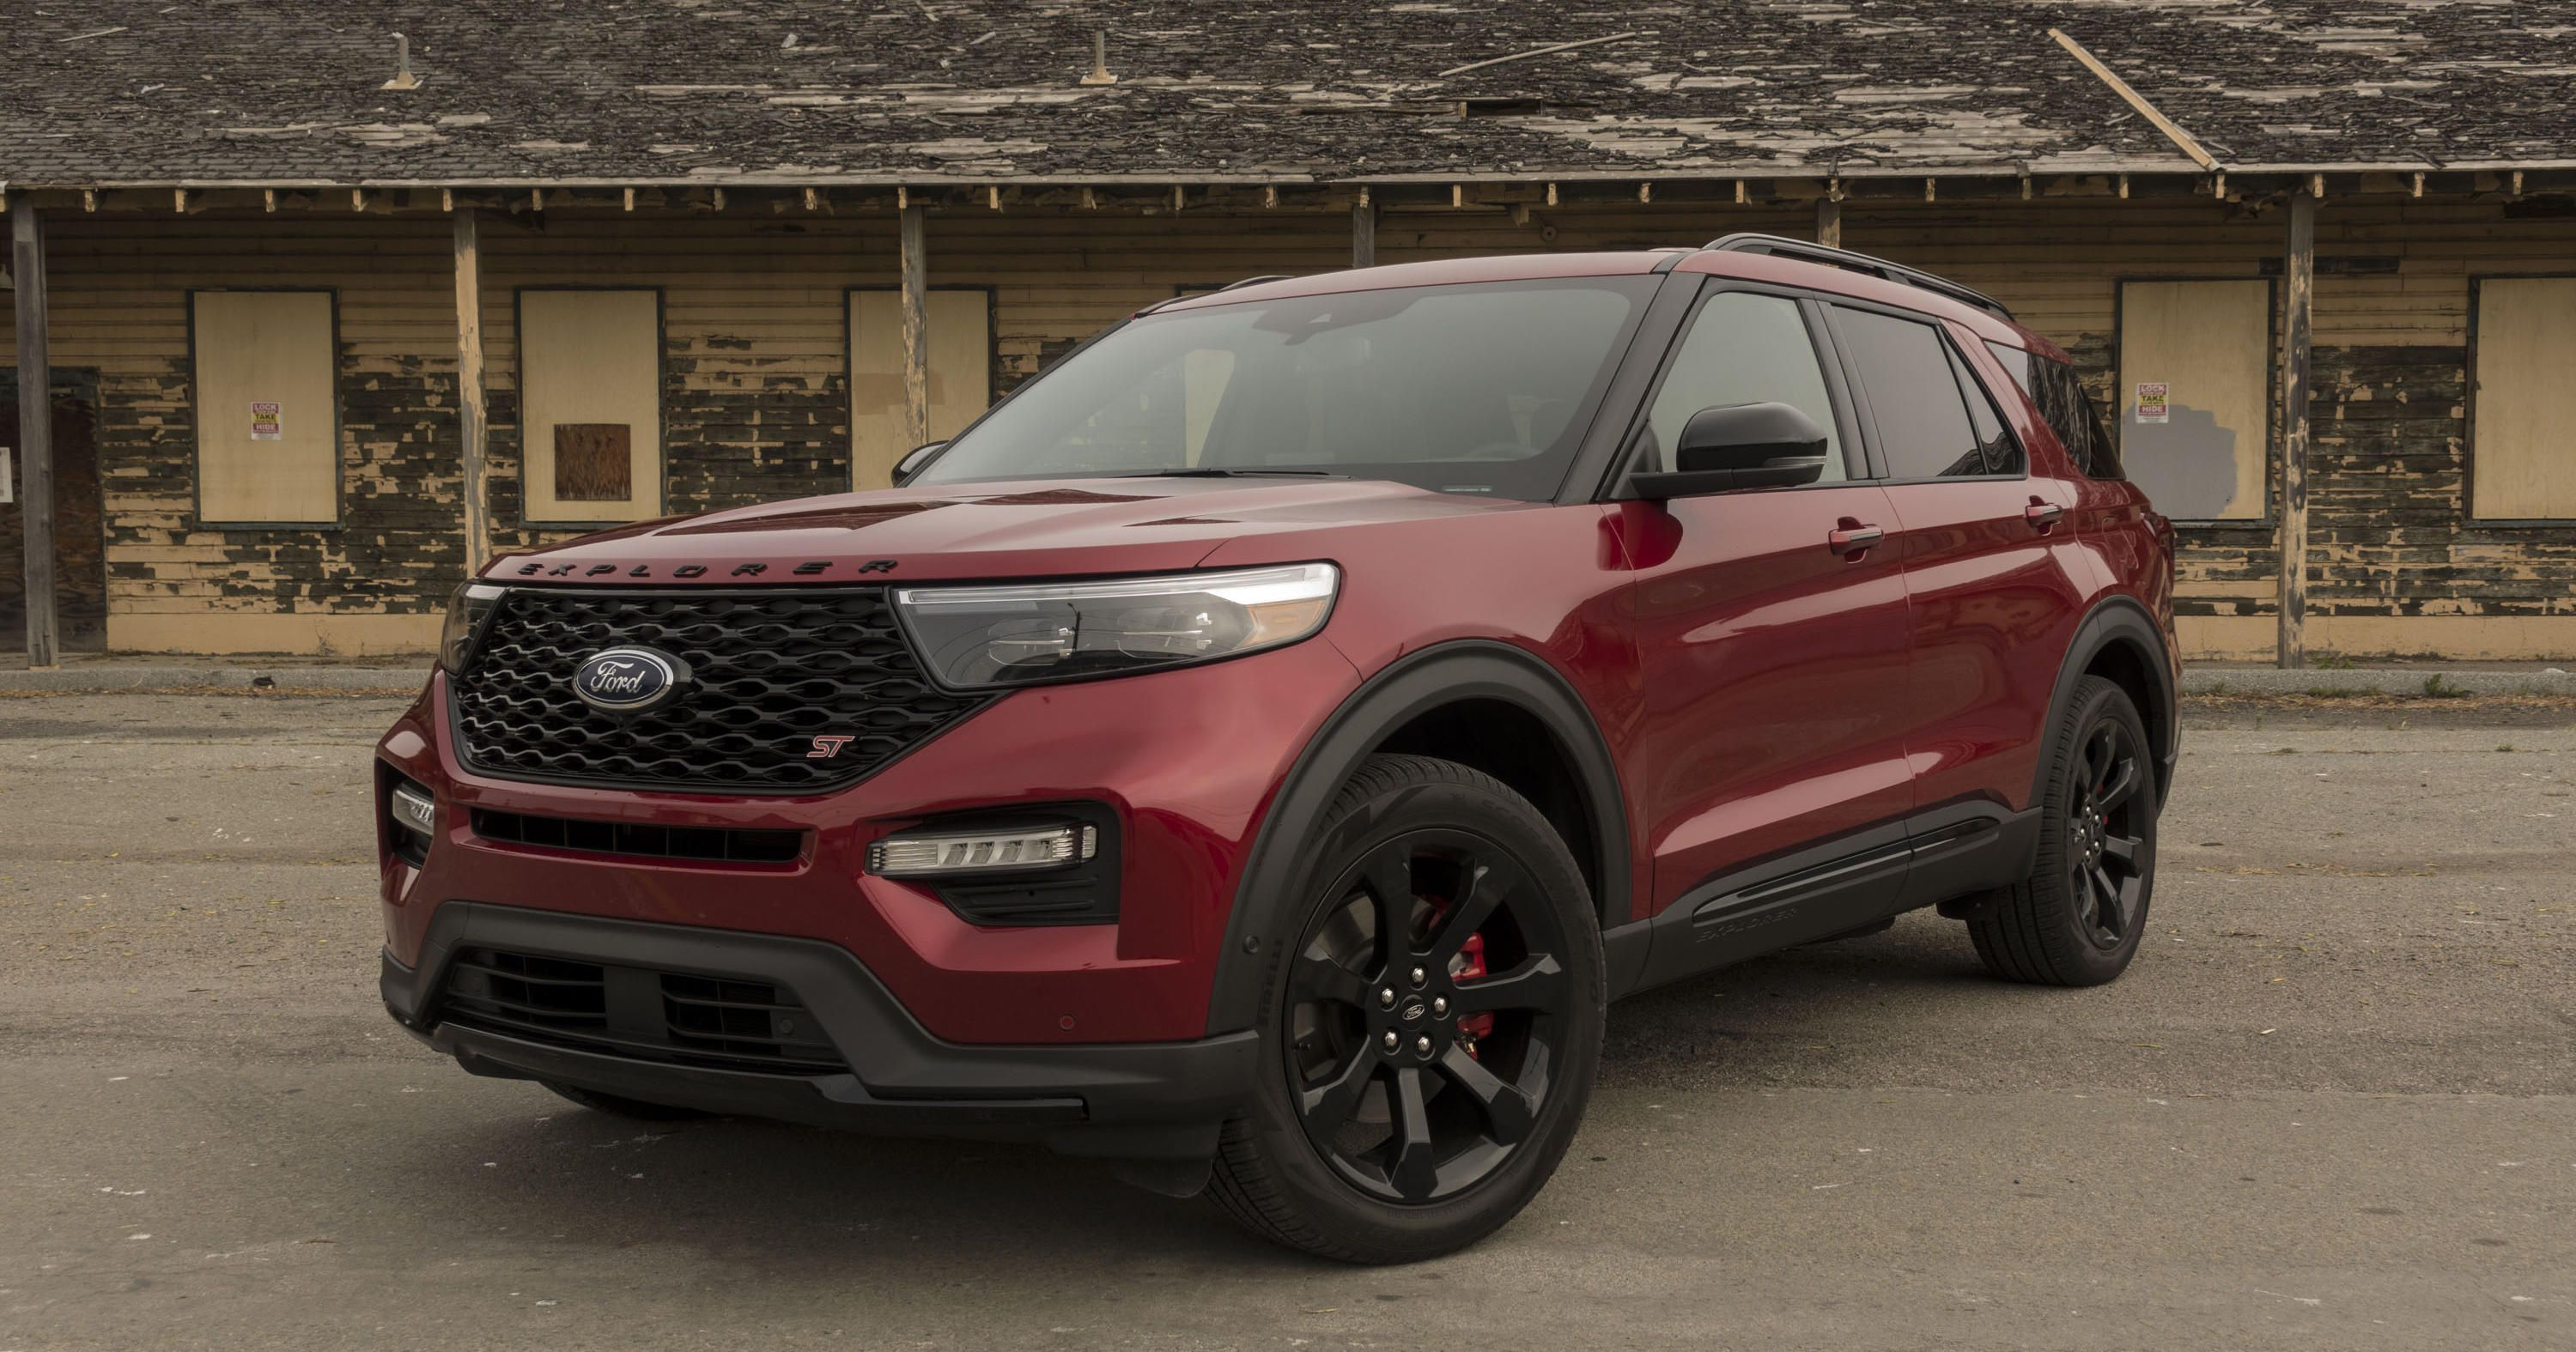 2020 Ford Explorer St Review A Midsize Suv With A Focus On Fast